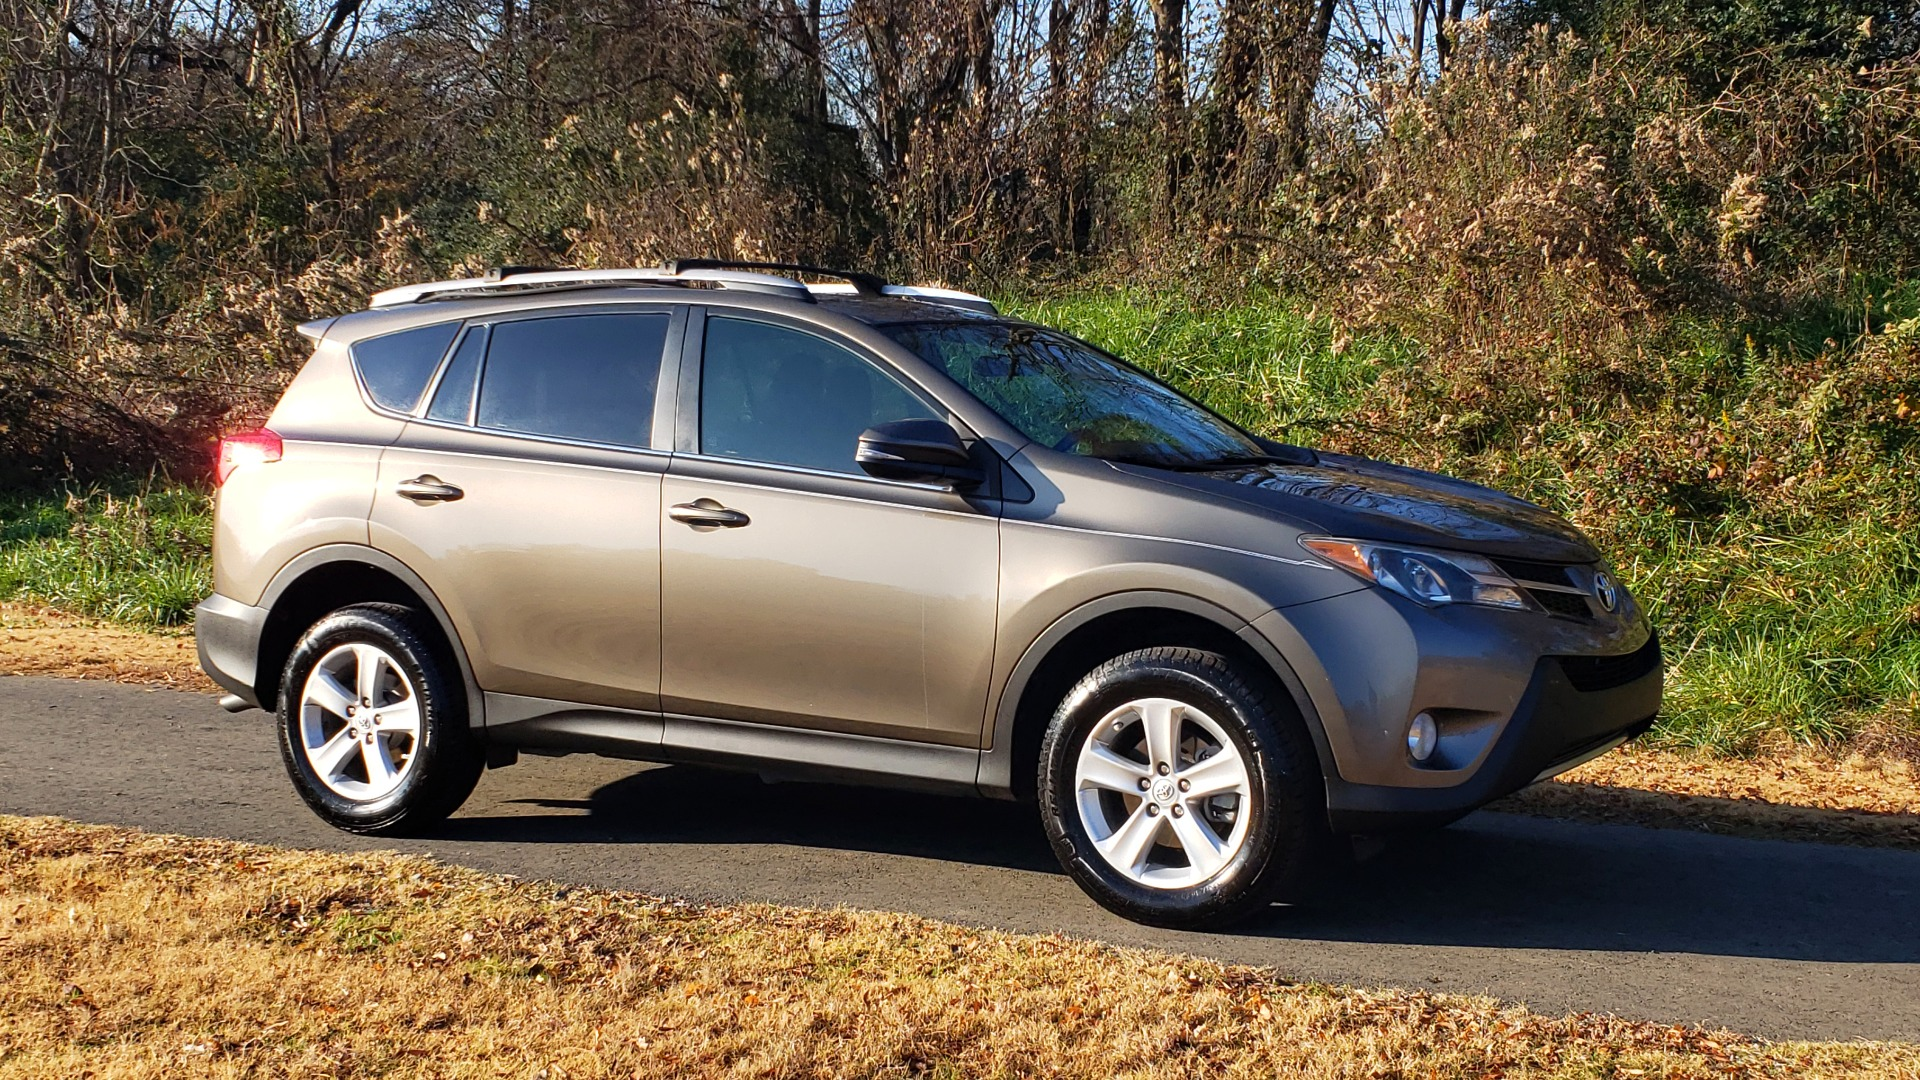 Used 2014 Toyota RAV4 XLE / FWD / 2.5L 4-CYL / 6-SPD AUTO / 17IN ALLOY / REARVIEW for sale $13,695 at Formula Imports in Charlotte NC 28227 6